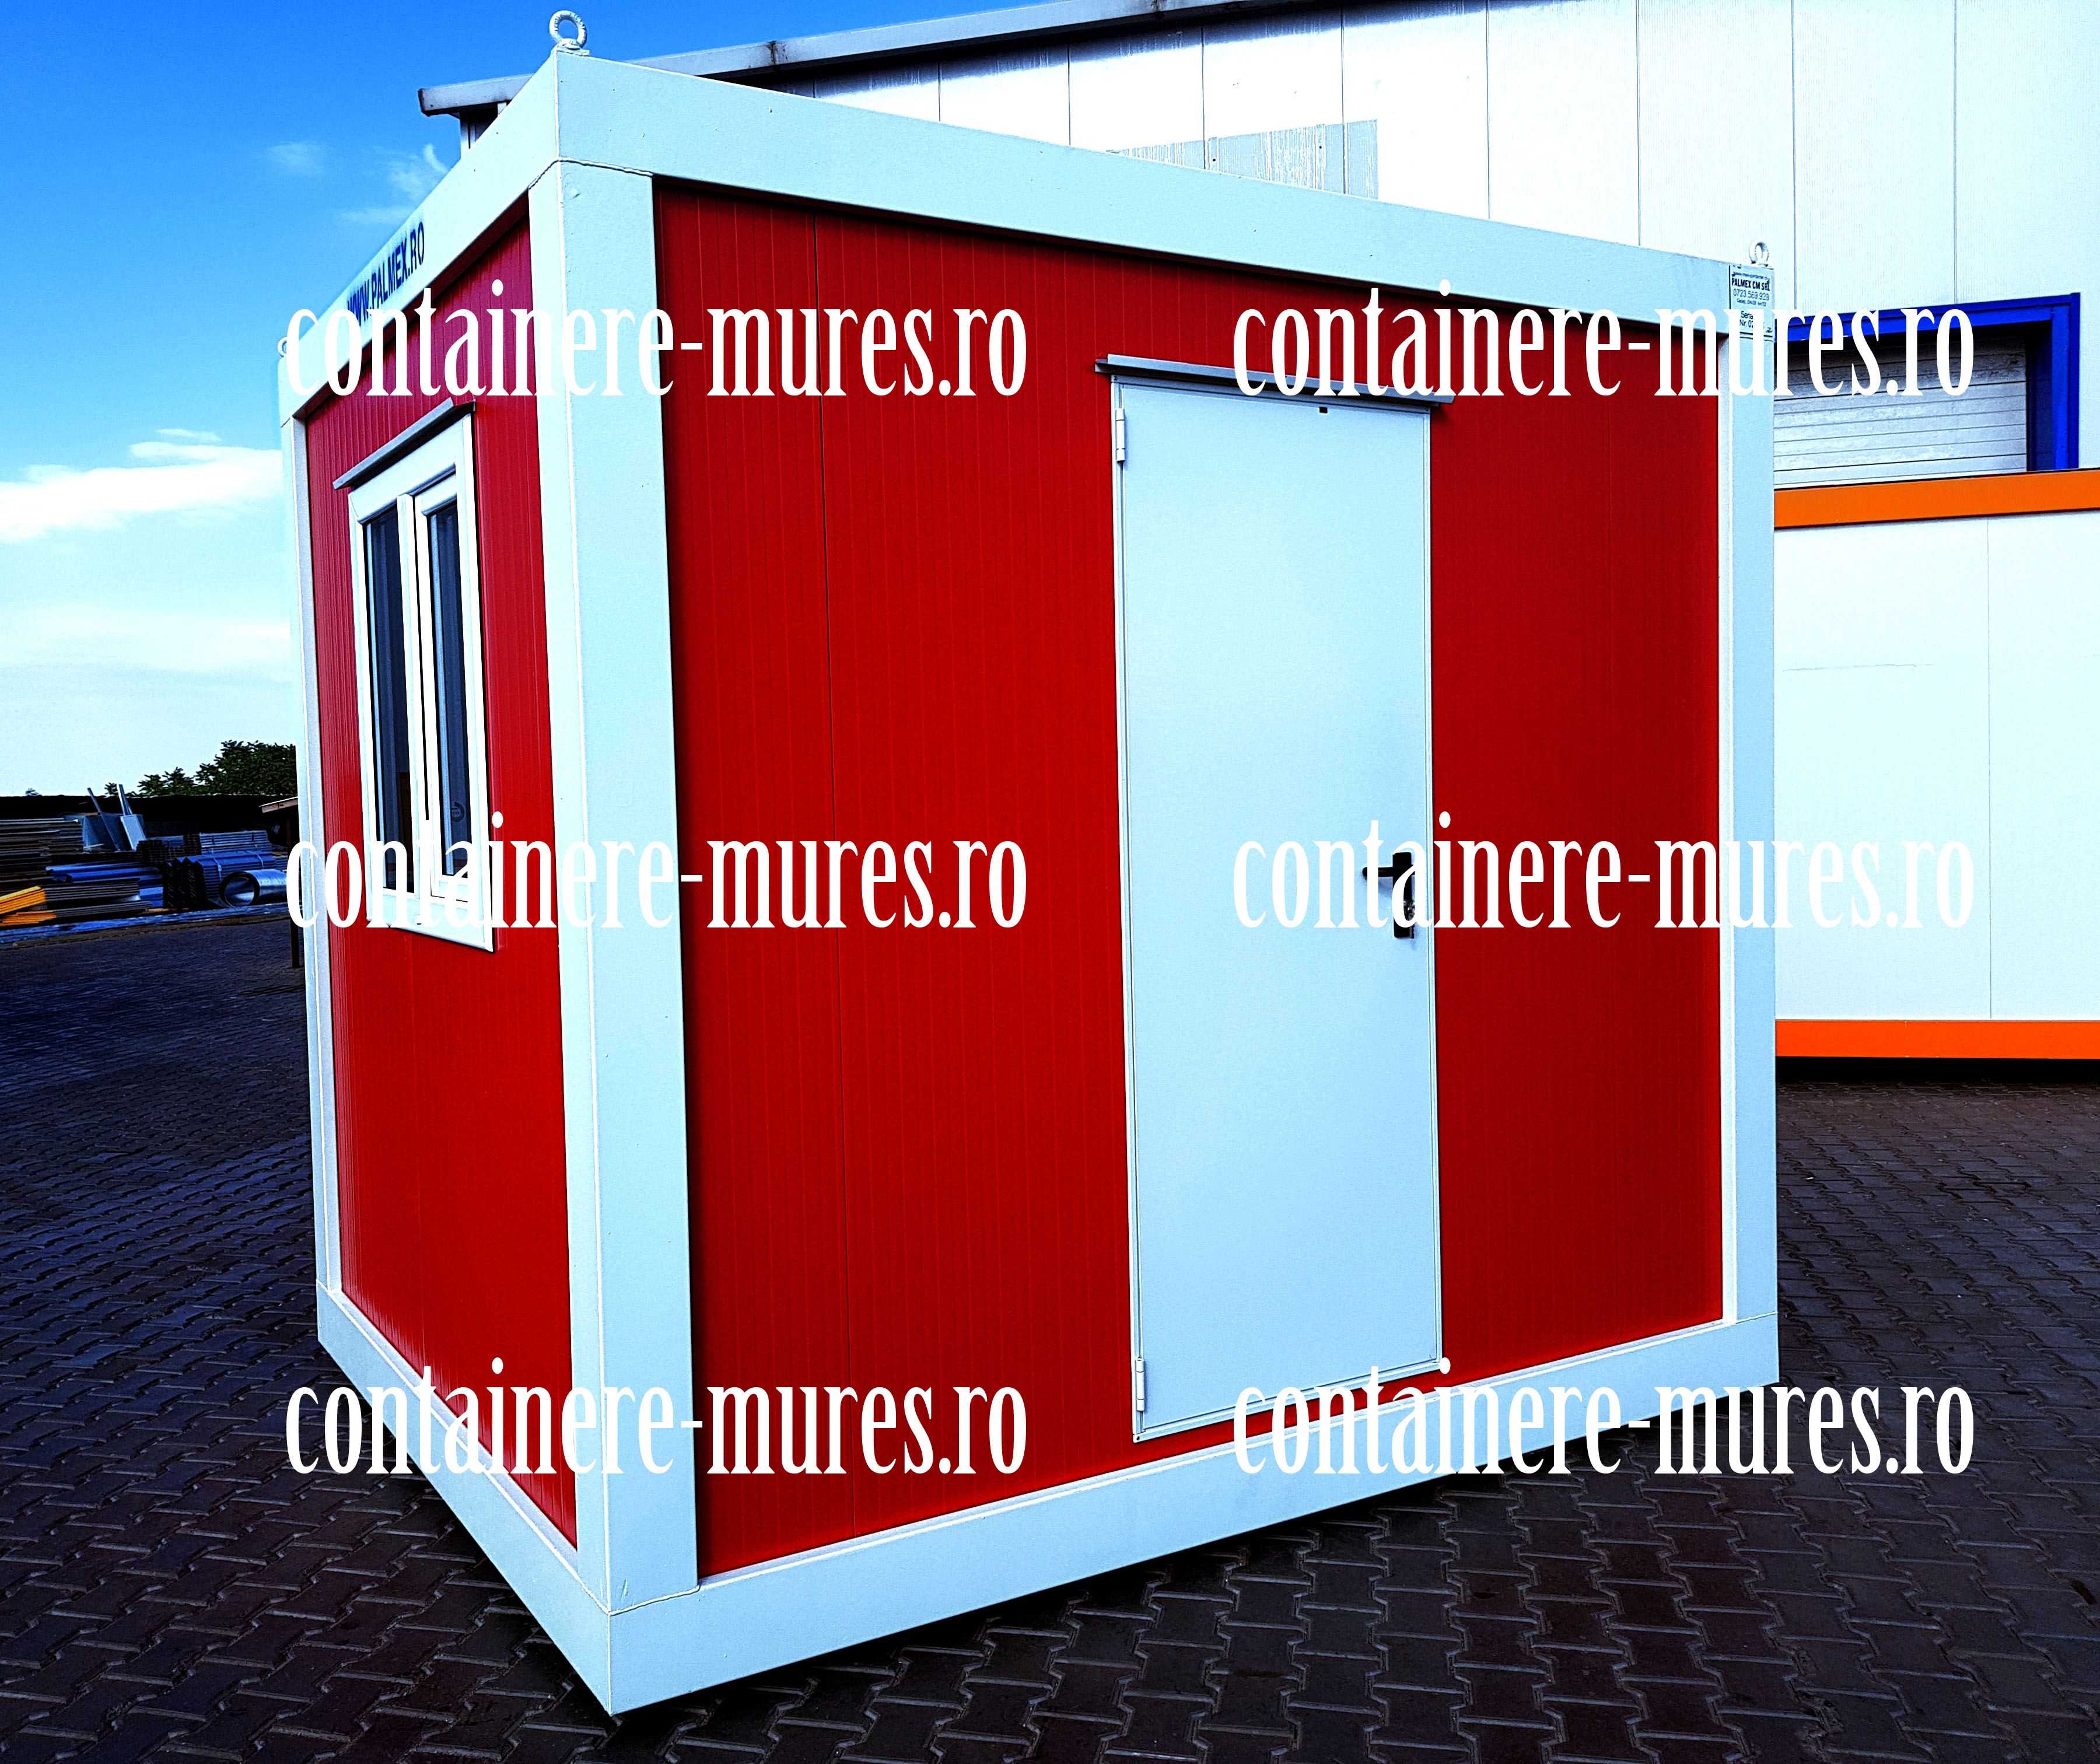 case mici din containere Mures